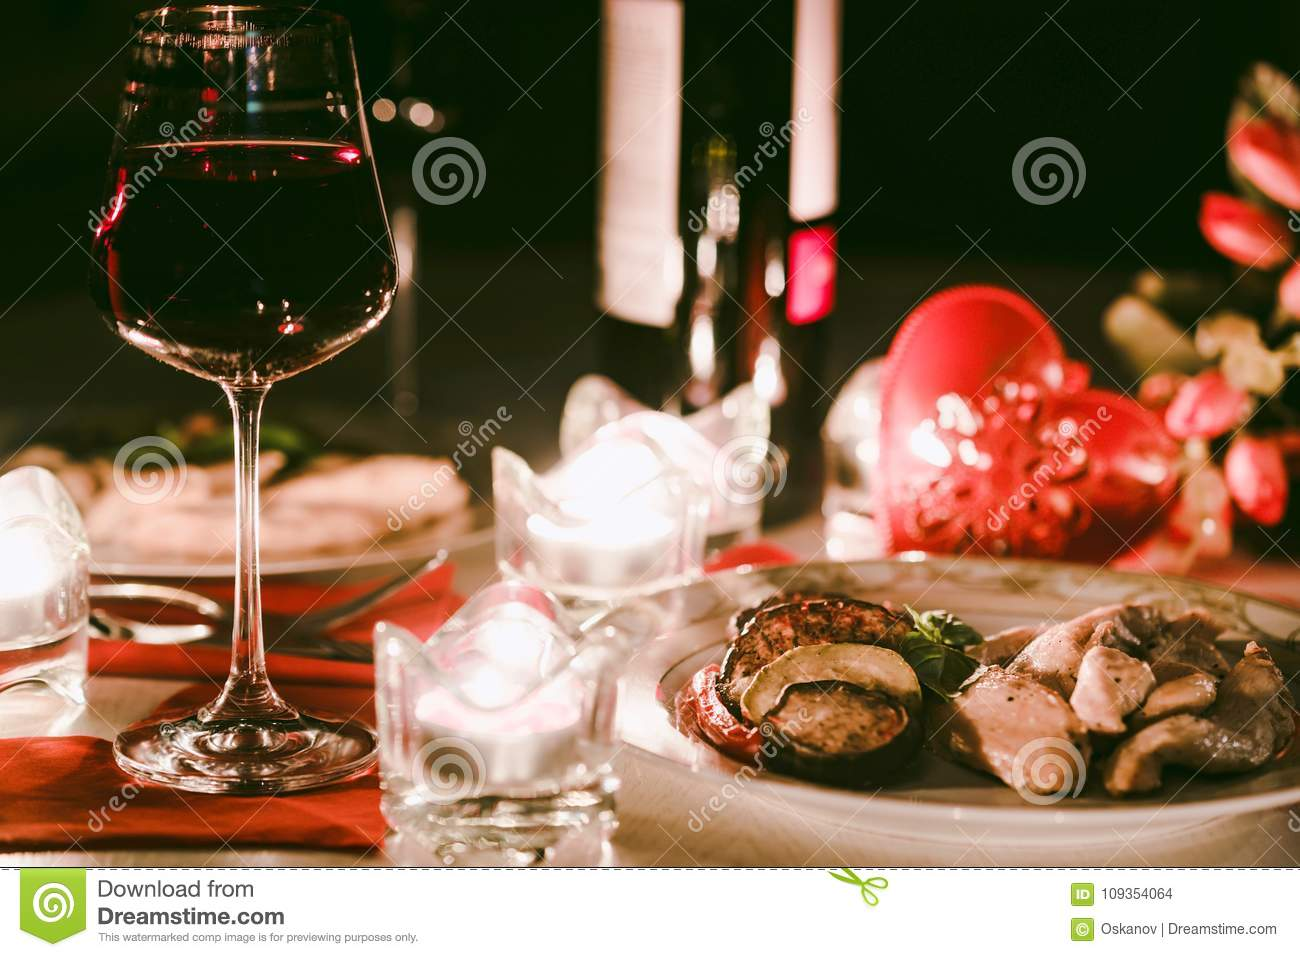 Diner Romantique Au Lit romantic dinner for two with wine,candles, flowers stock